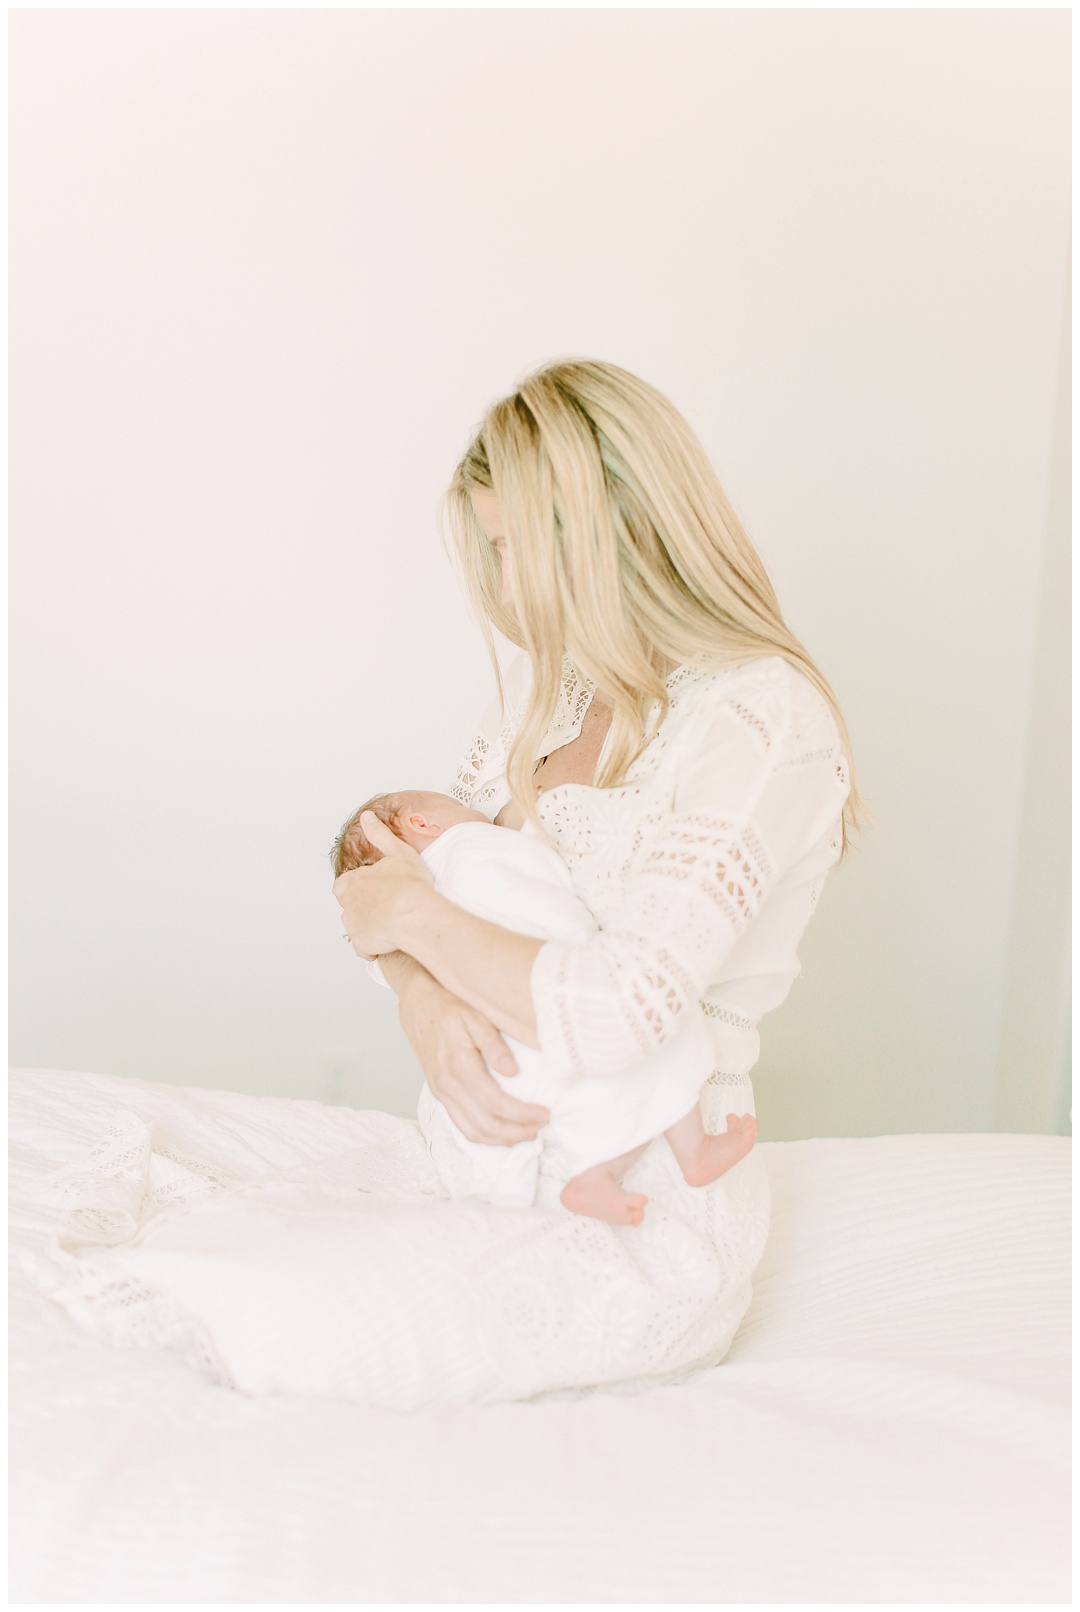 Newport_Beach_Newborn_Photographer_Lifestyle_Newborn_Photography_in_home_session_Cori_Kleckner_Photography_0941.jpg